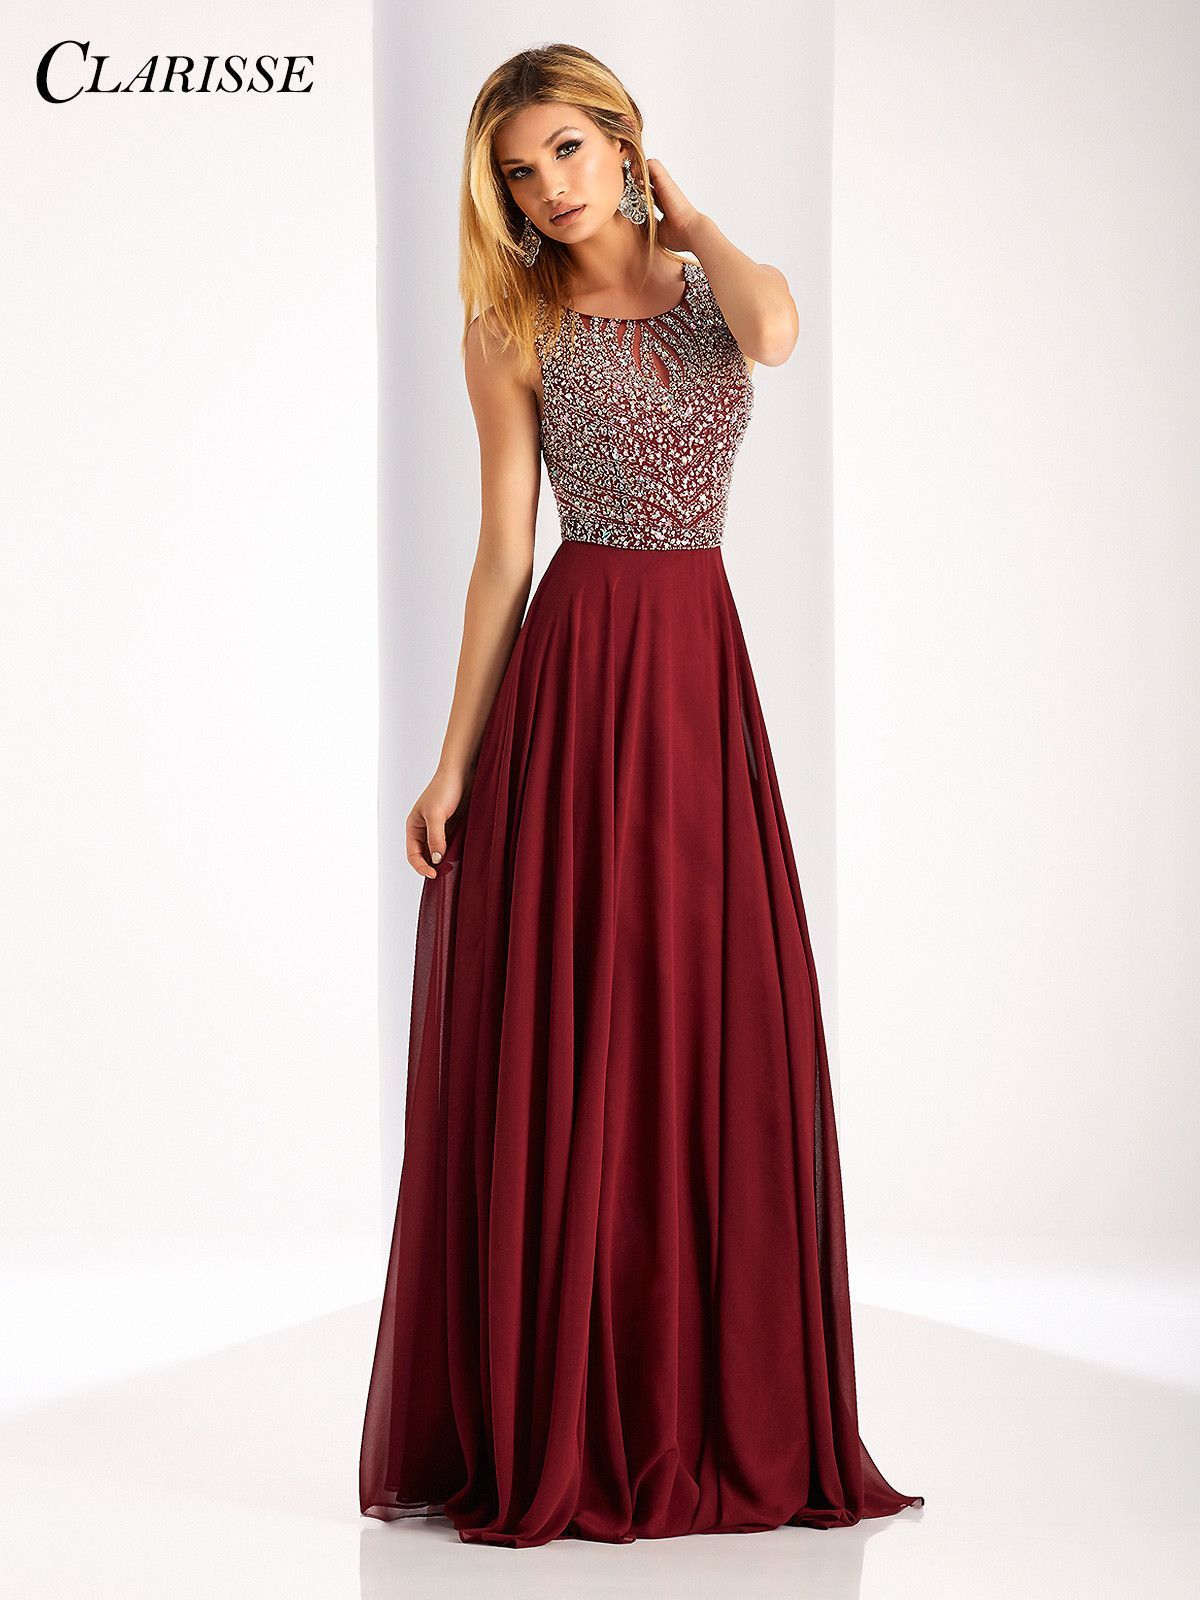 Clarisse Prom Dress 3167 | Dresses., Clarisse and Neckline